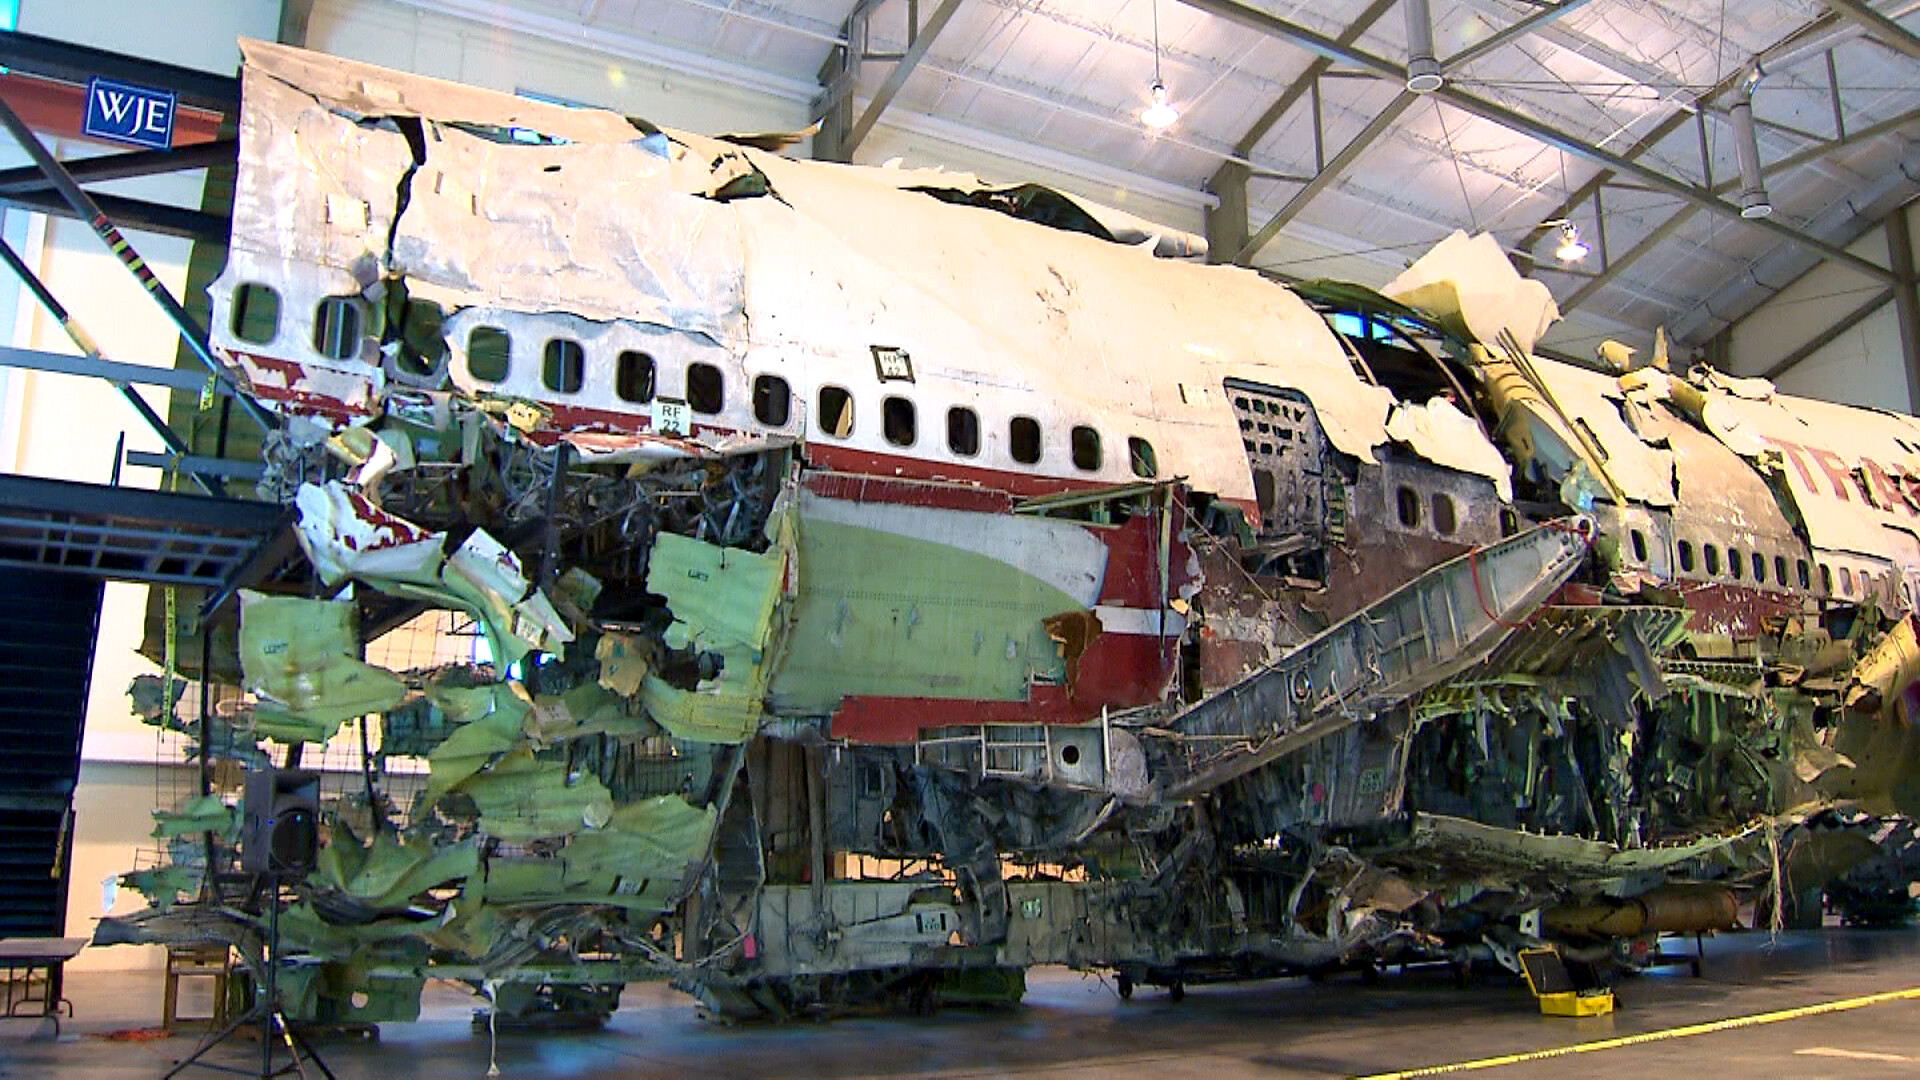 25-year anniversary of TWA Flight 800 explosion marks new chapter in disaster's history